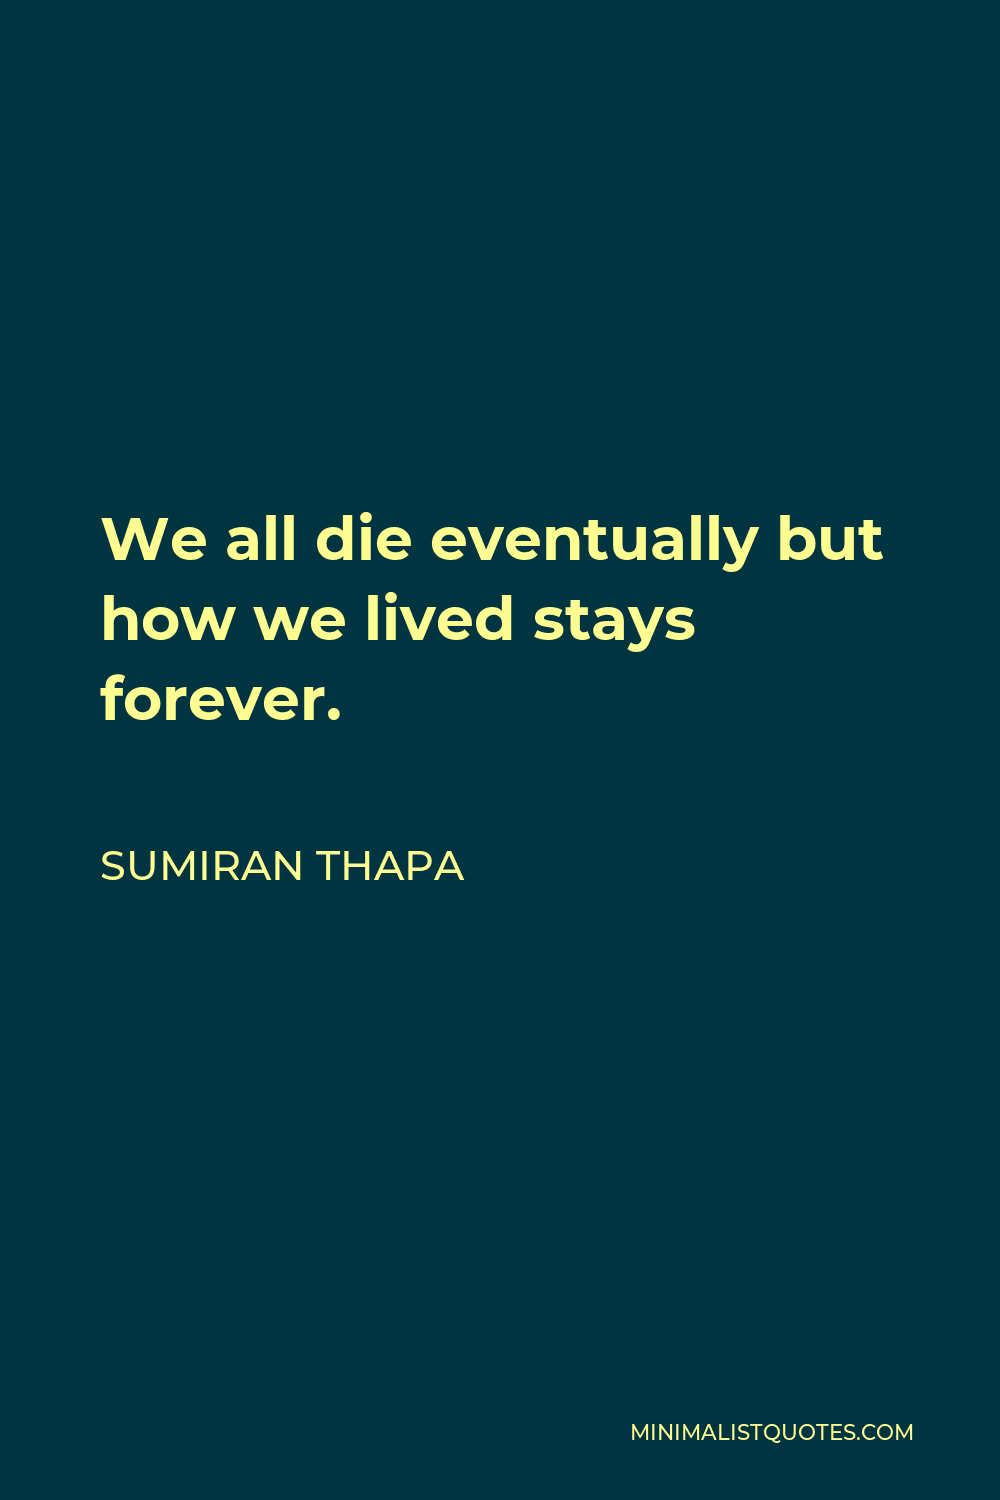 Sumiran Thapa Quote - We all die eventually but how we lived stays forever.